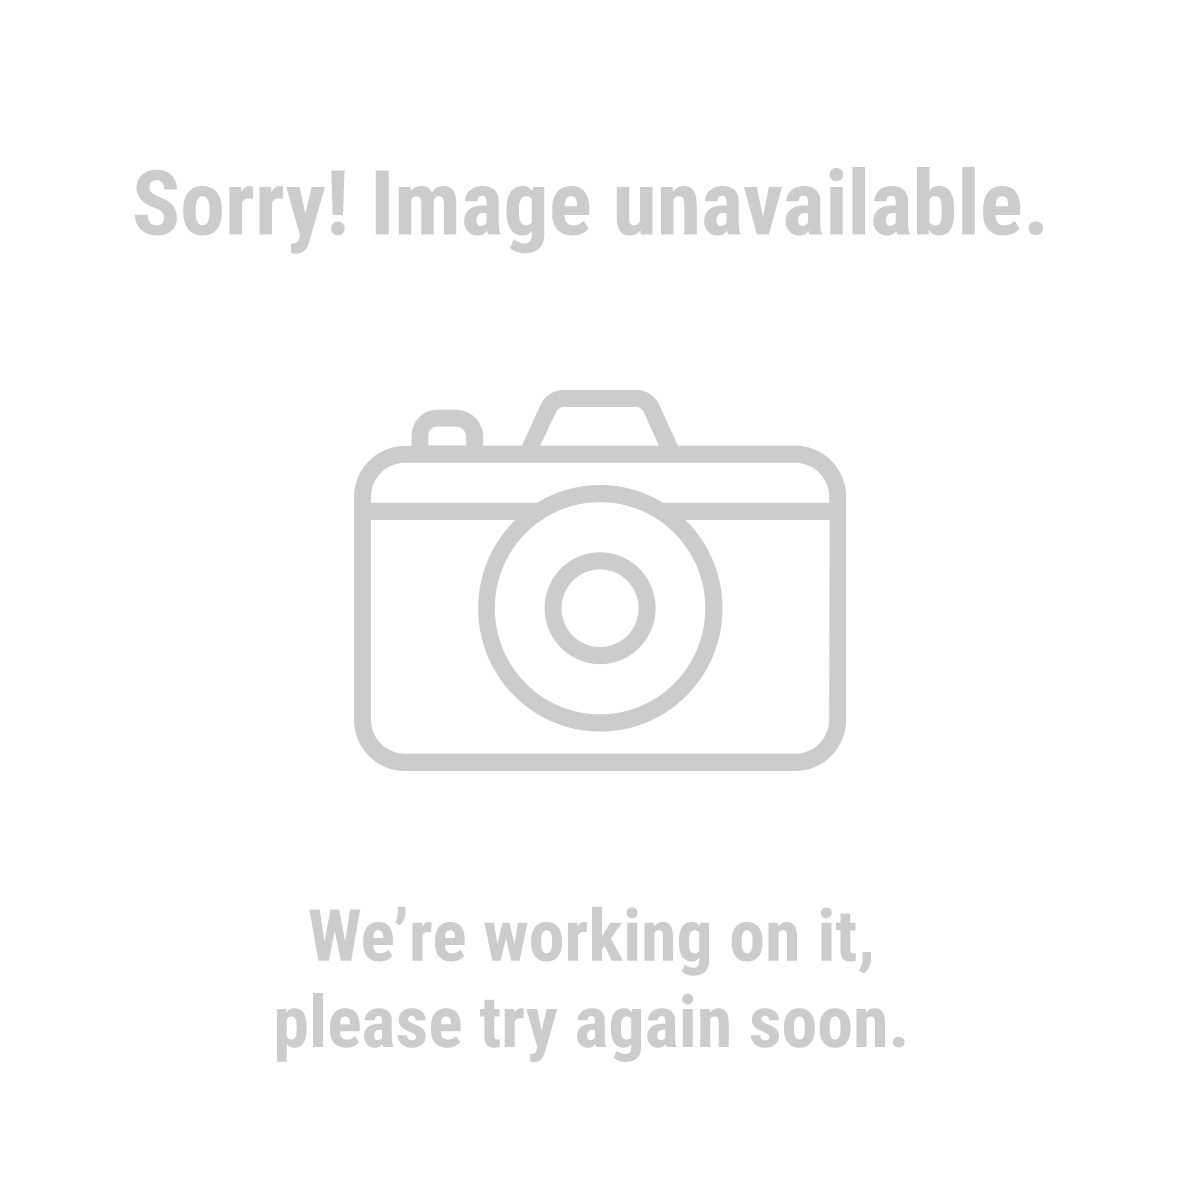 Warrior® 69604 Grit Flap Disc